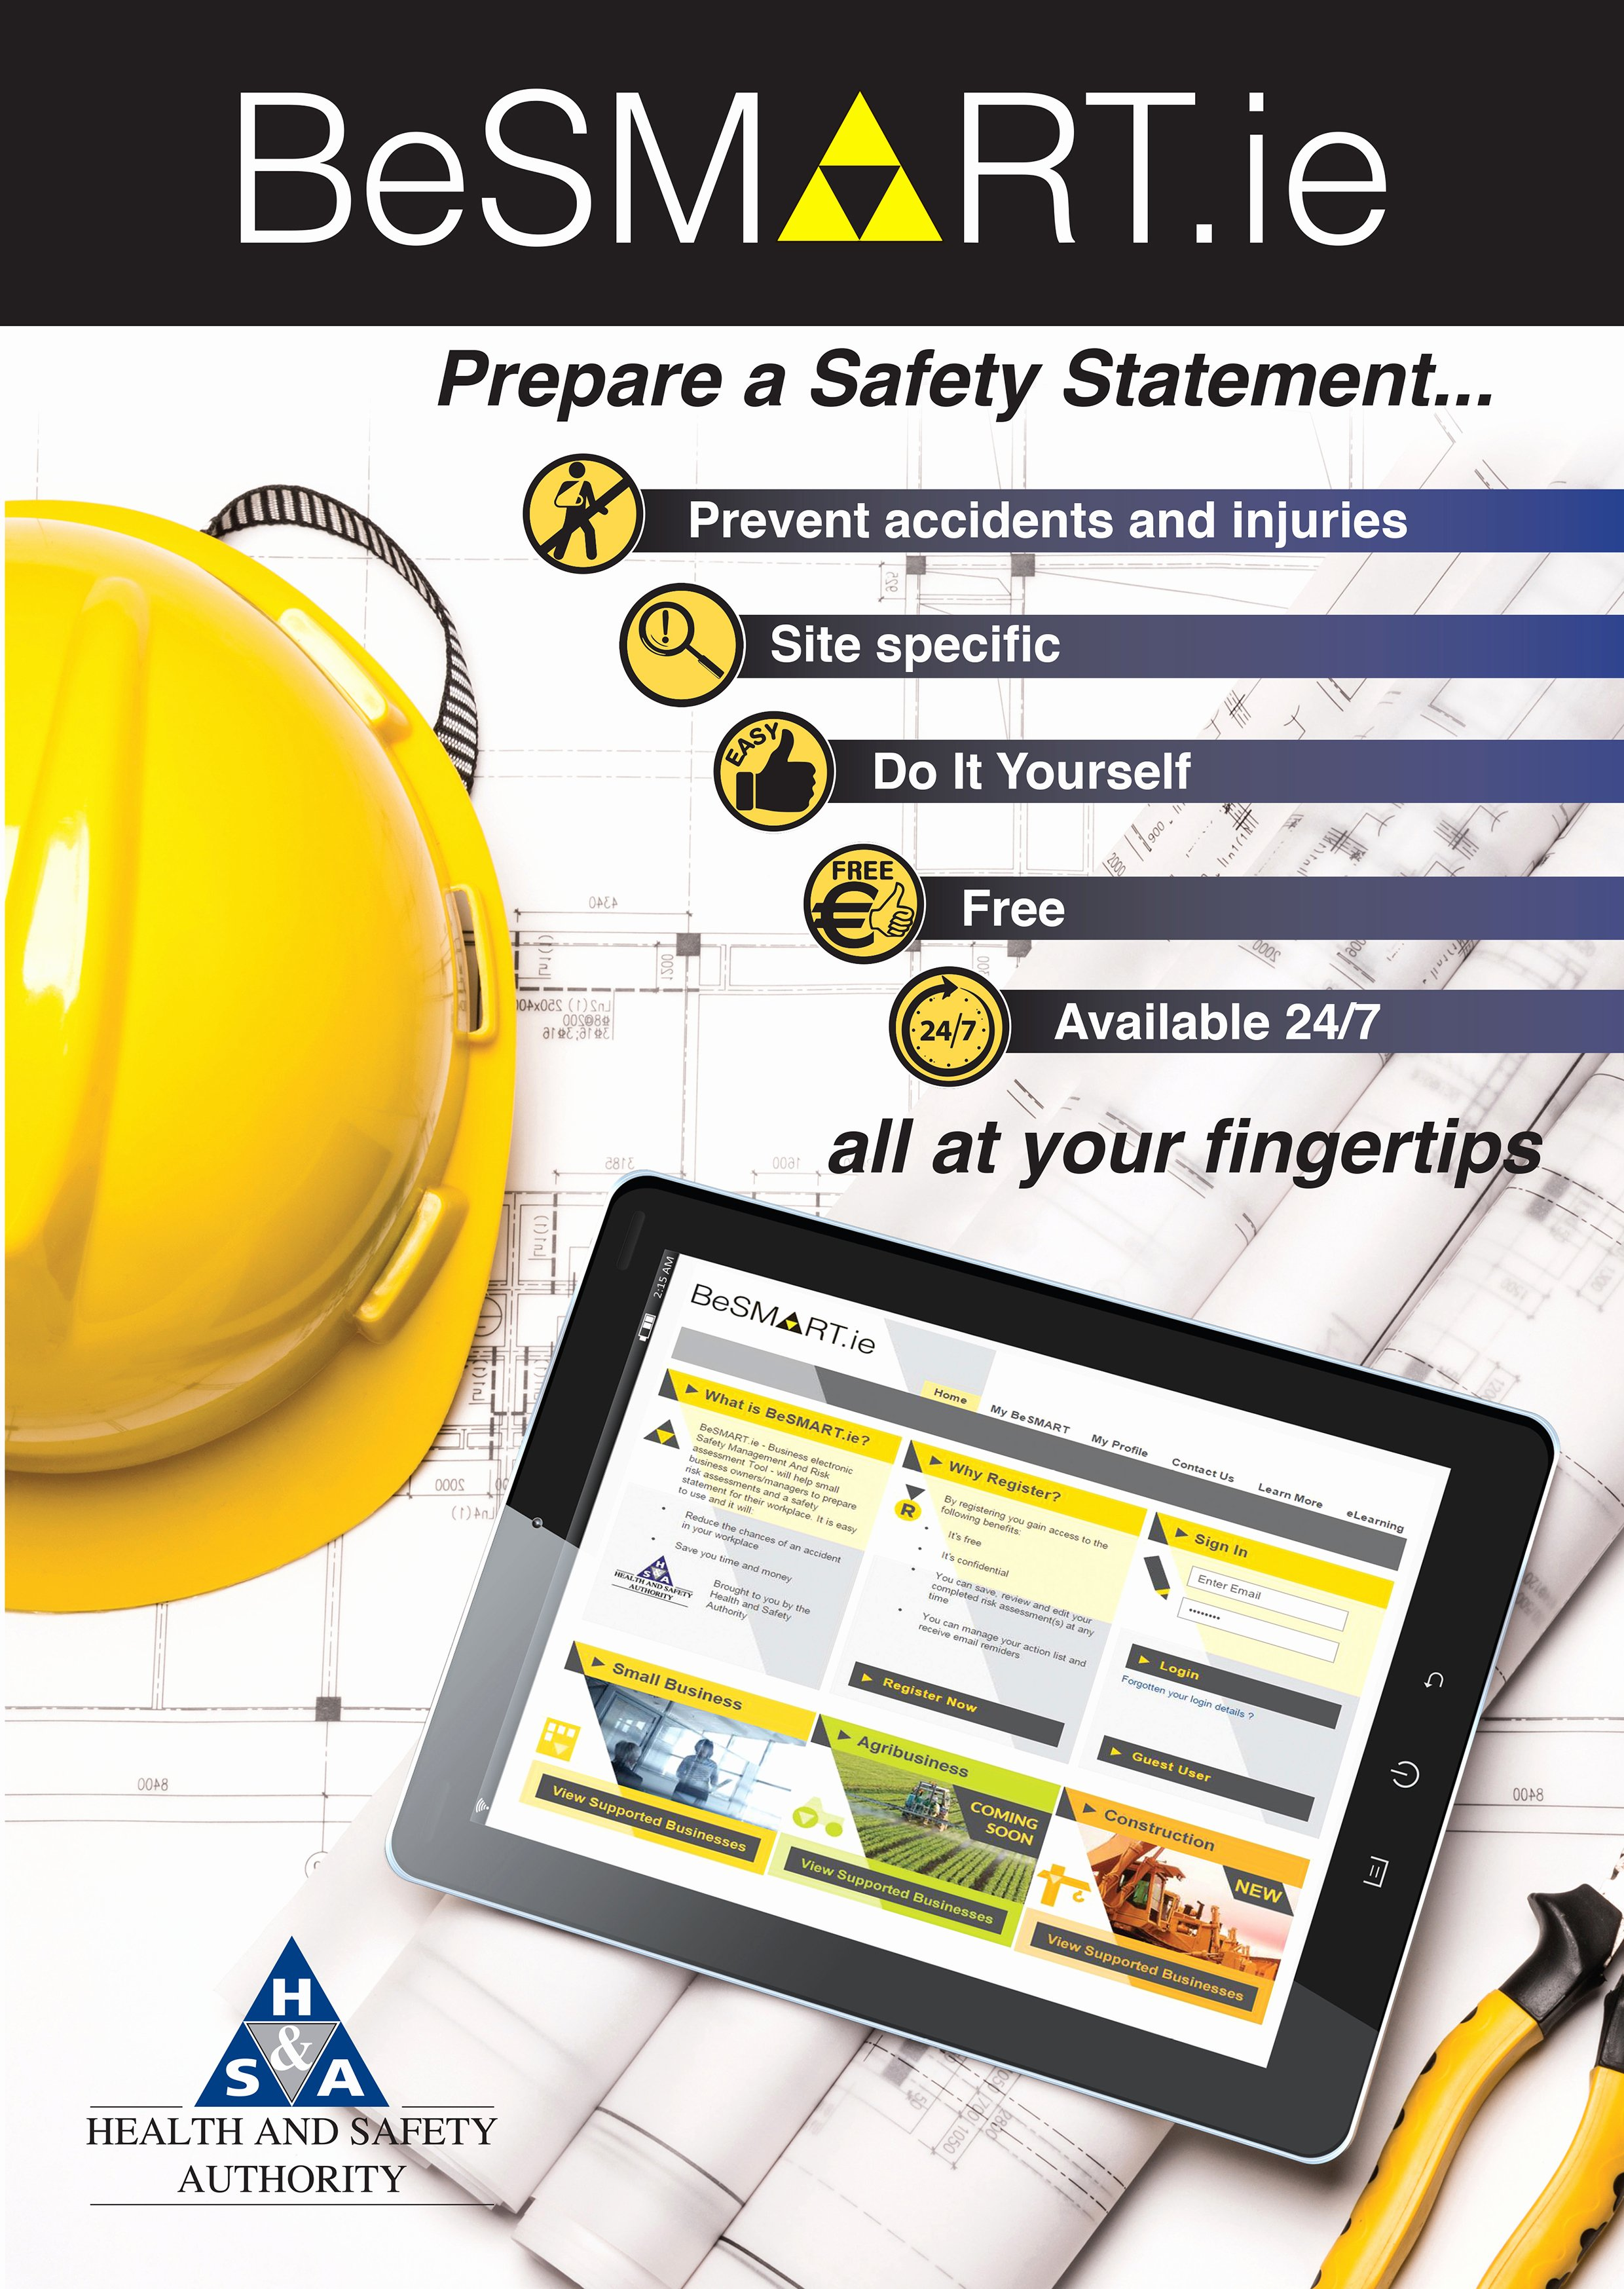 Construction Safety Manual Template Fresh Besmart for Construction Health and Safety Authority